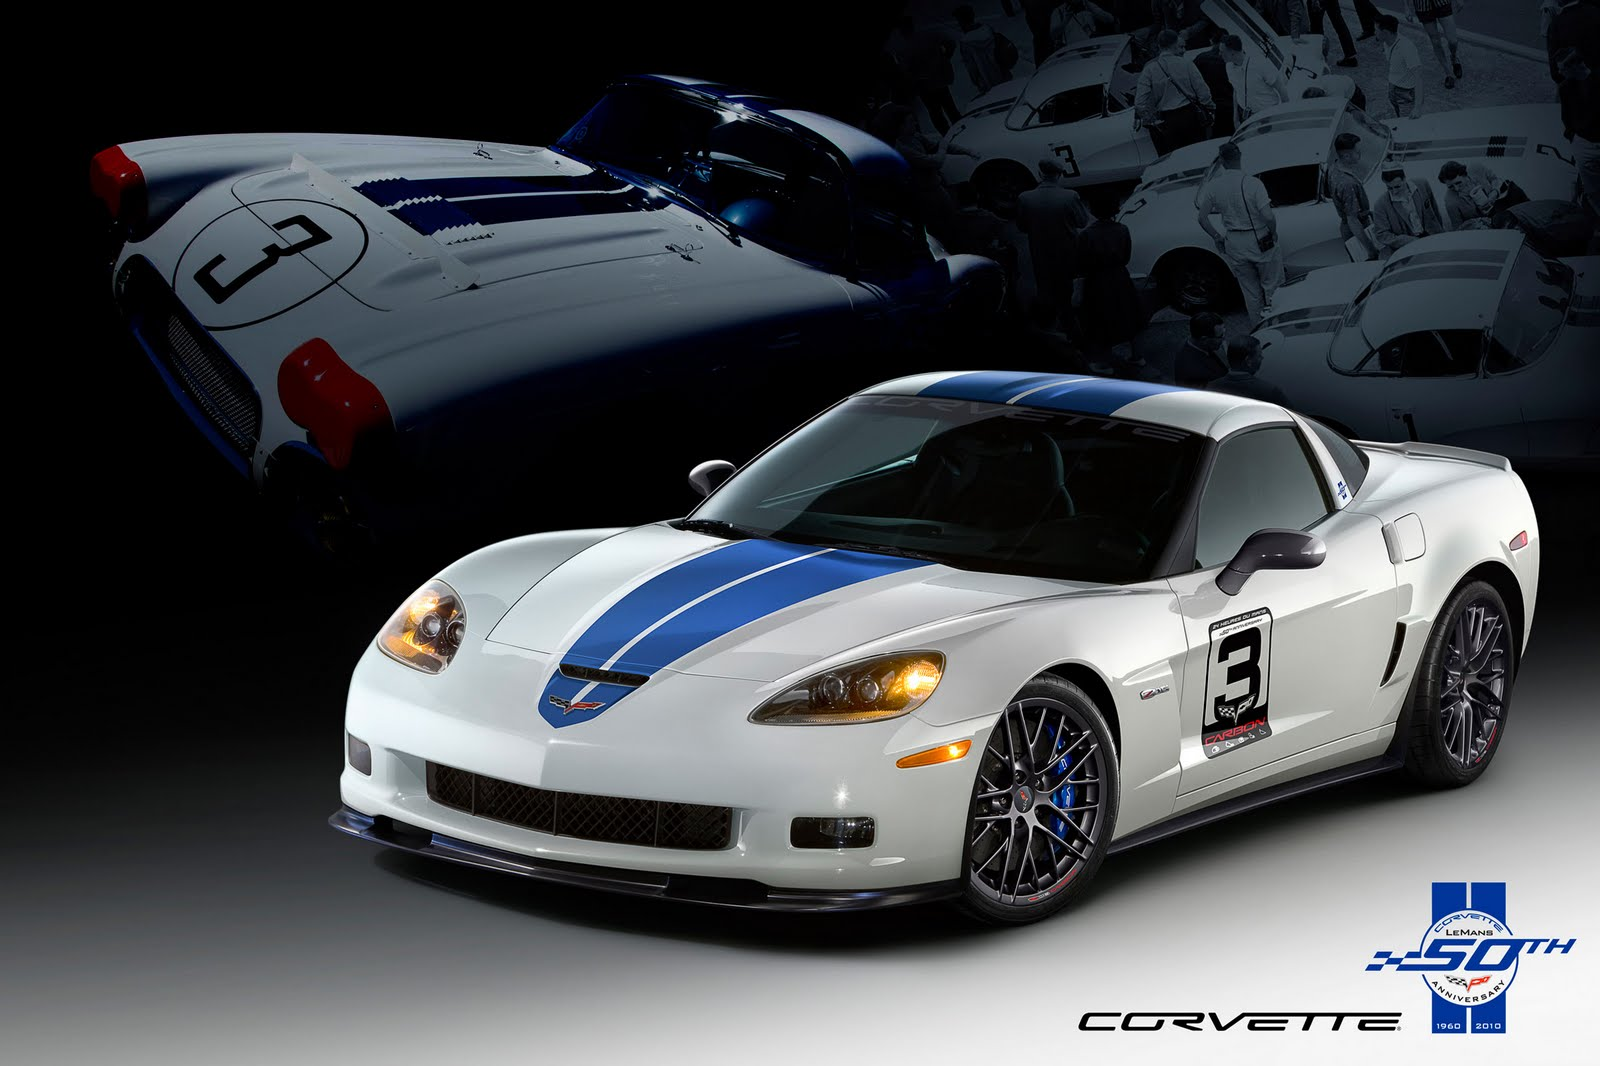 Corvette Racing by Year